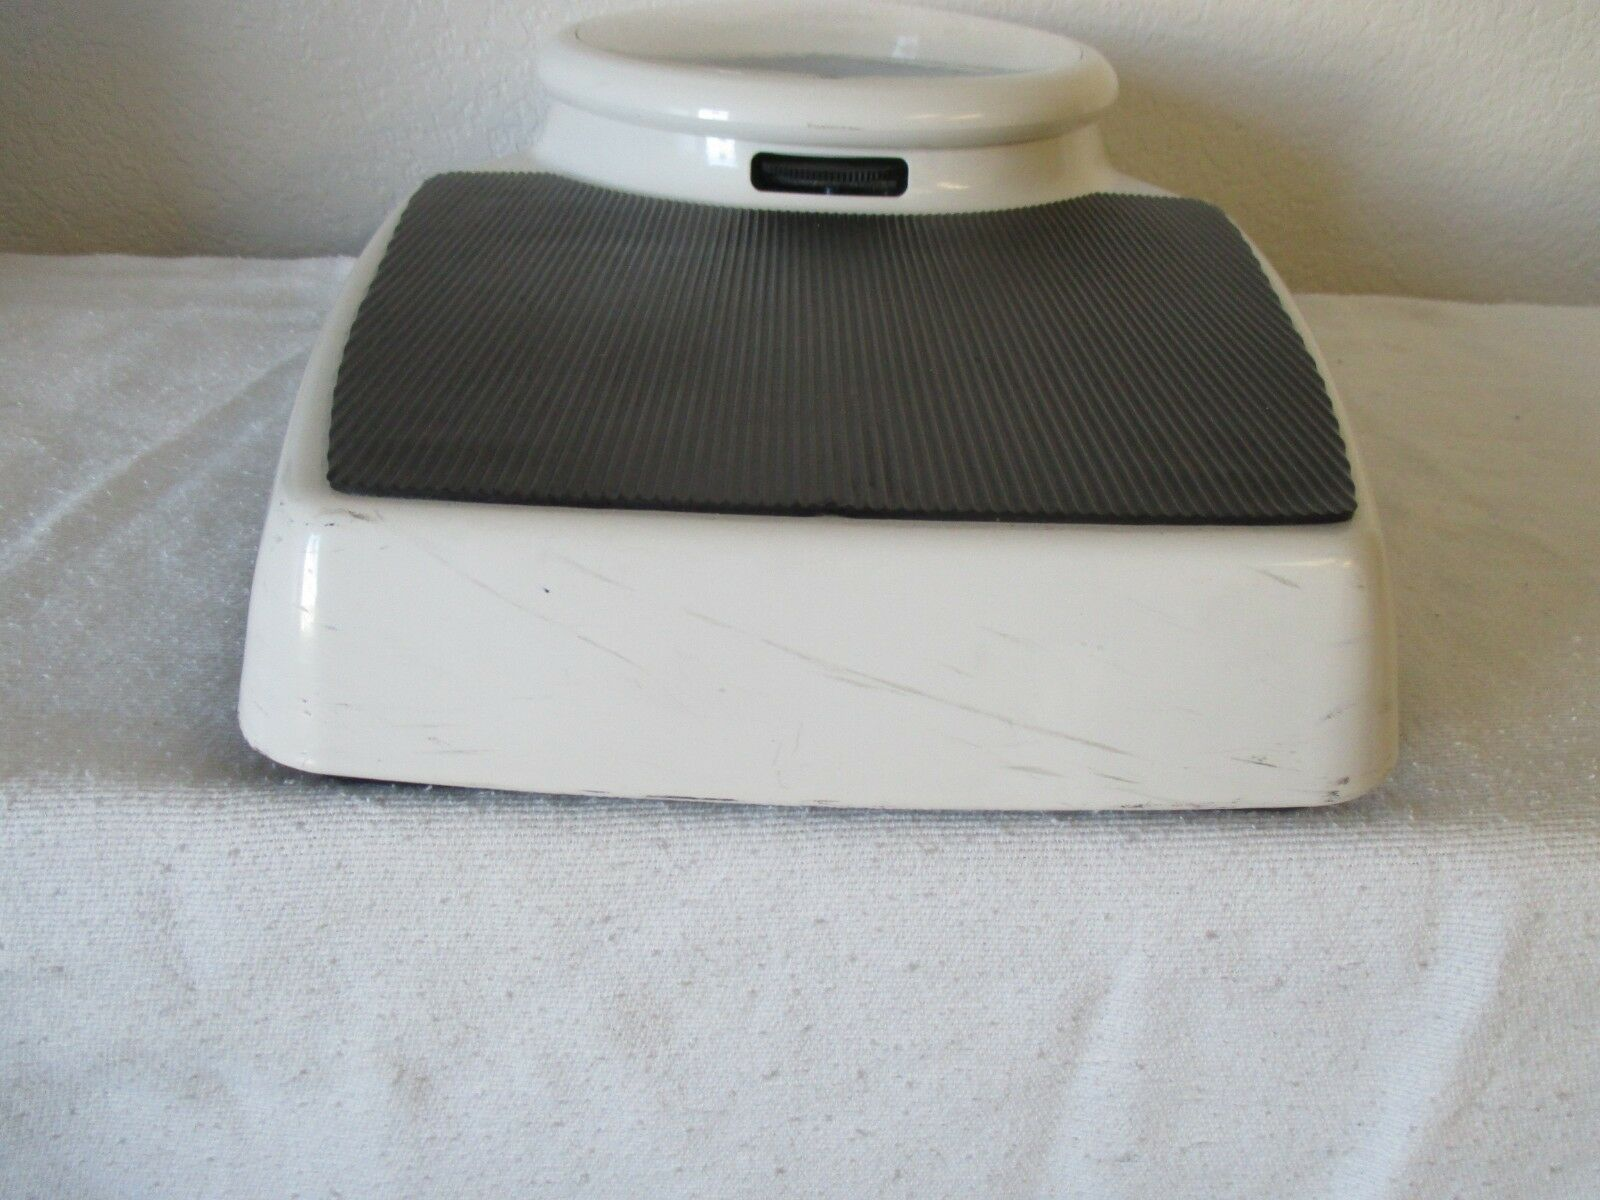 SECA Bathroom Scale Mechanical Model 762 1119009 Used 400